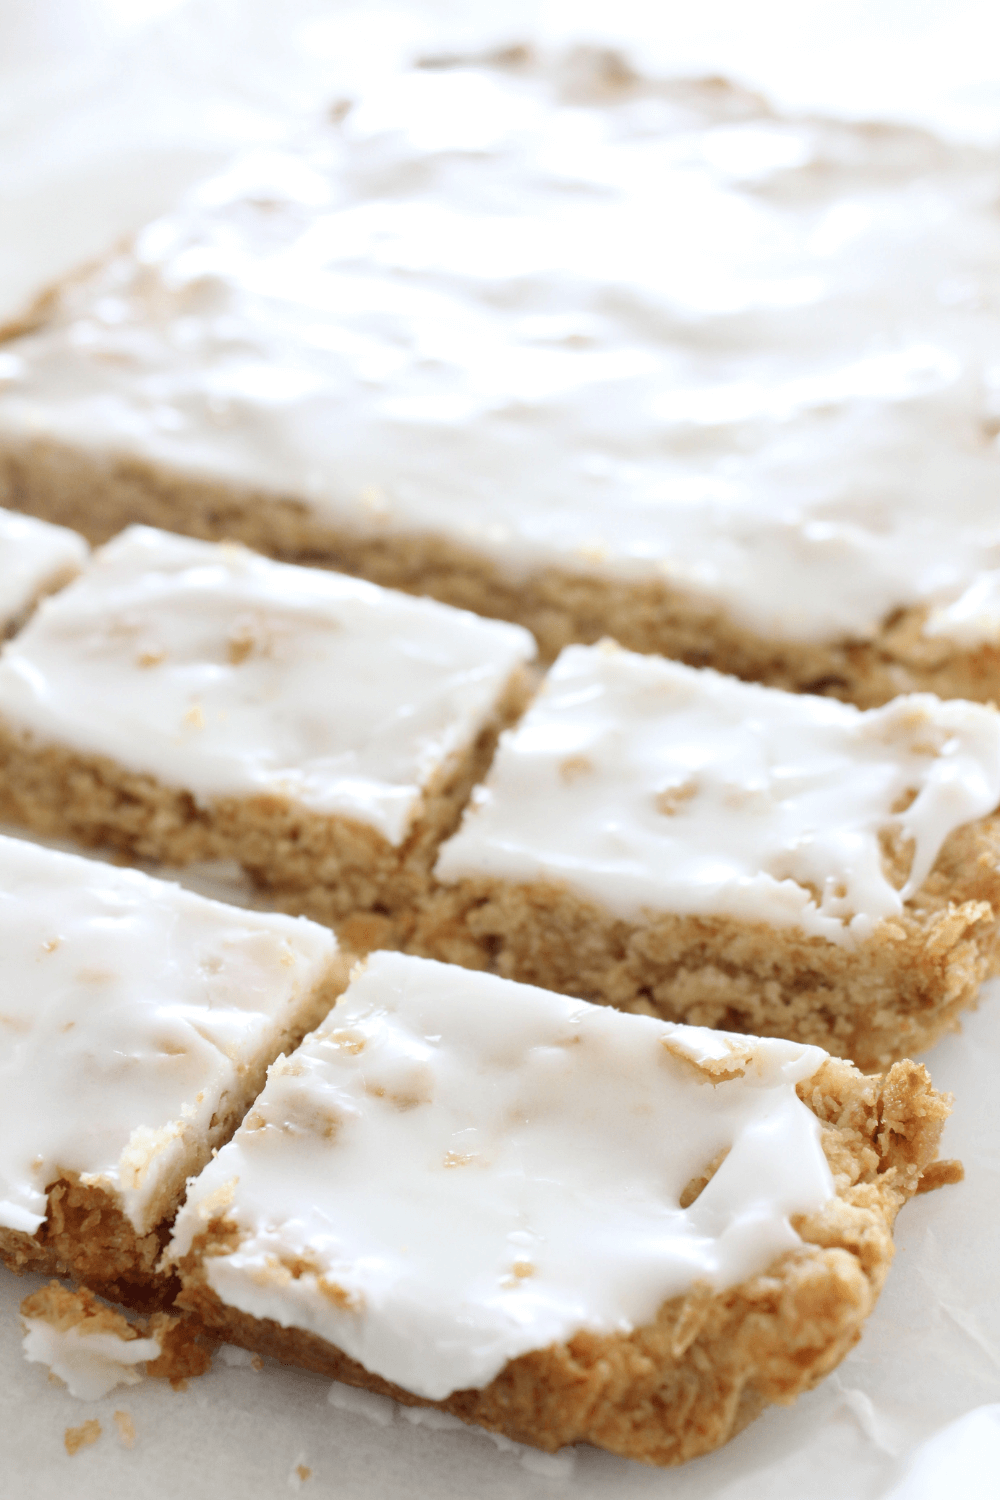 If you love chocolate Weetbix slice you are sure to love this sweet and tangy lemon Weetbix slice. It's a quick and easy recipe that the family is sure to love.